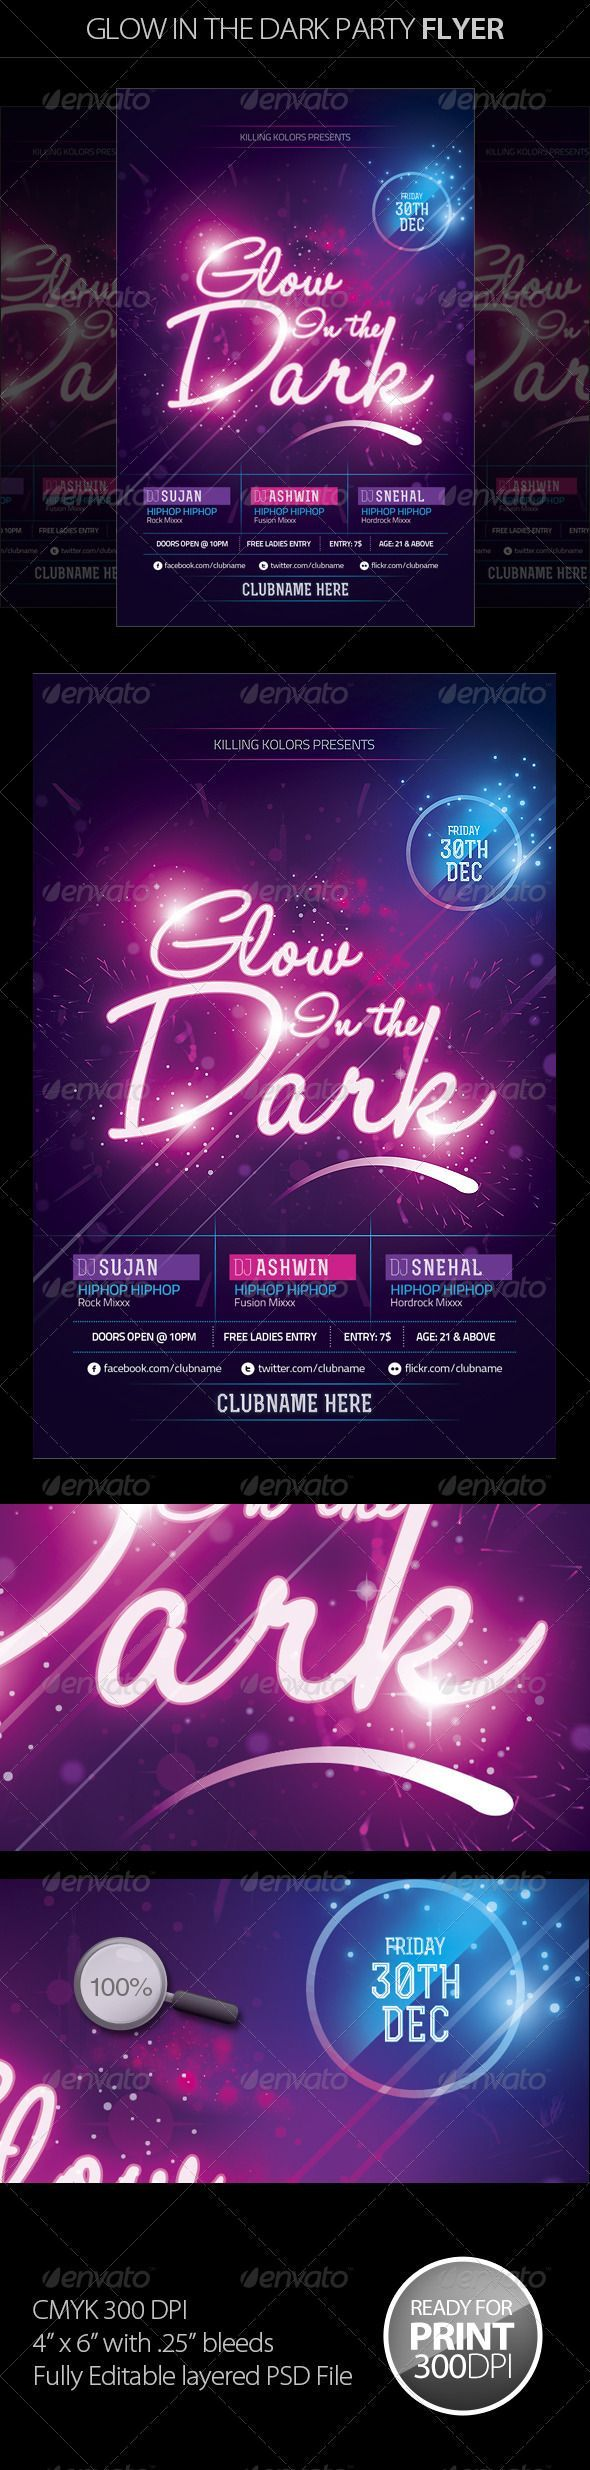 Glow in the Dark Party Flyer II  #GraphicRiver         Glow in the Dark Party Flyer is unique and colourful party flyer,  It is perfect for any kind of your parties, the main file include .psd file (Photoshop file)  It is very easy to edit all the text colors images etc.  	 File Feature:  	 4×6 with .25 inch bleed 300 DPI CMYK  Easy customizable text  Organized & colored group layers Fonts & other details included in help file   	 FONTS USED: Rex /  Titillium /  Socialico /  Halo Handletter…